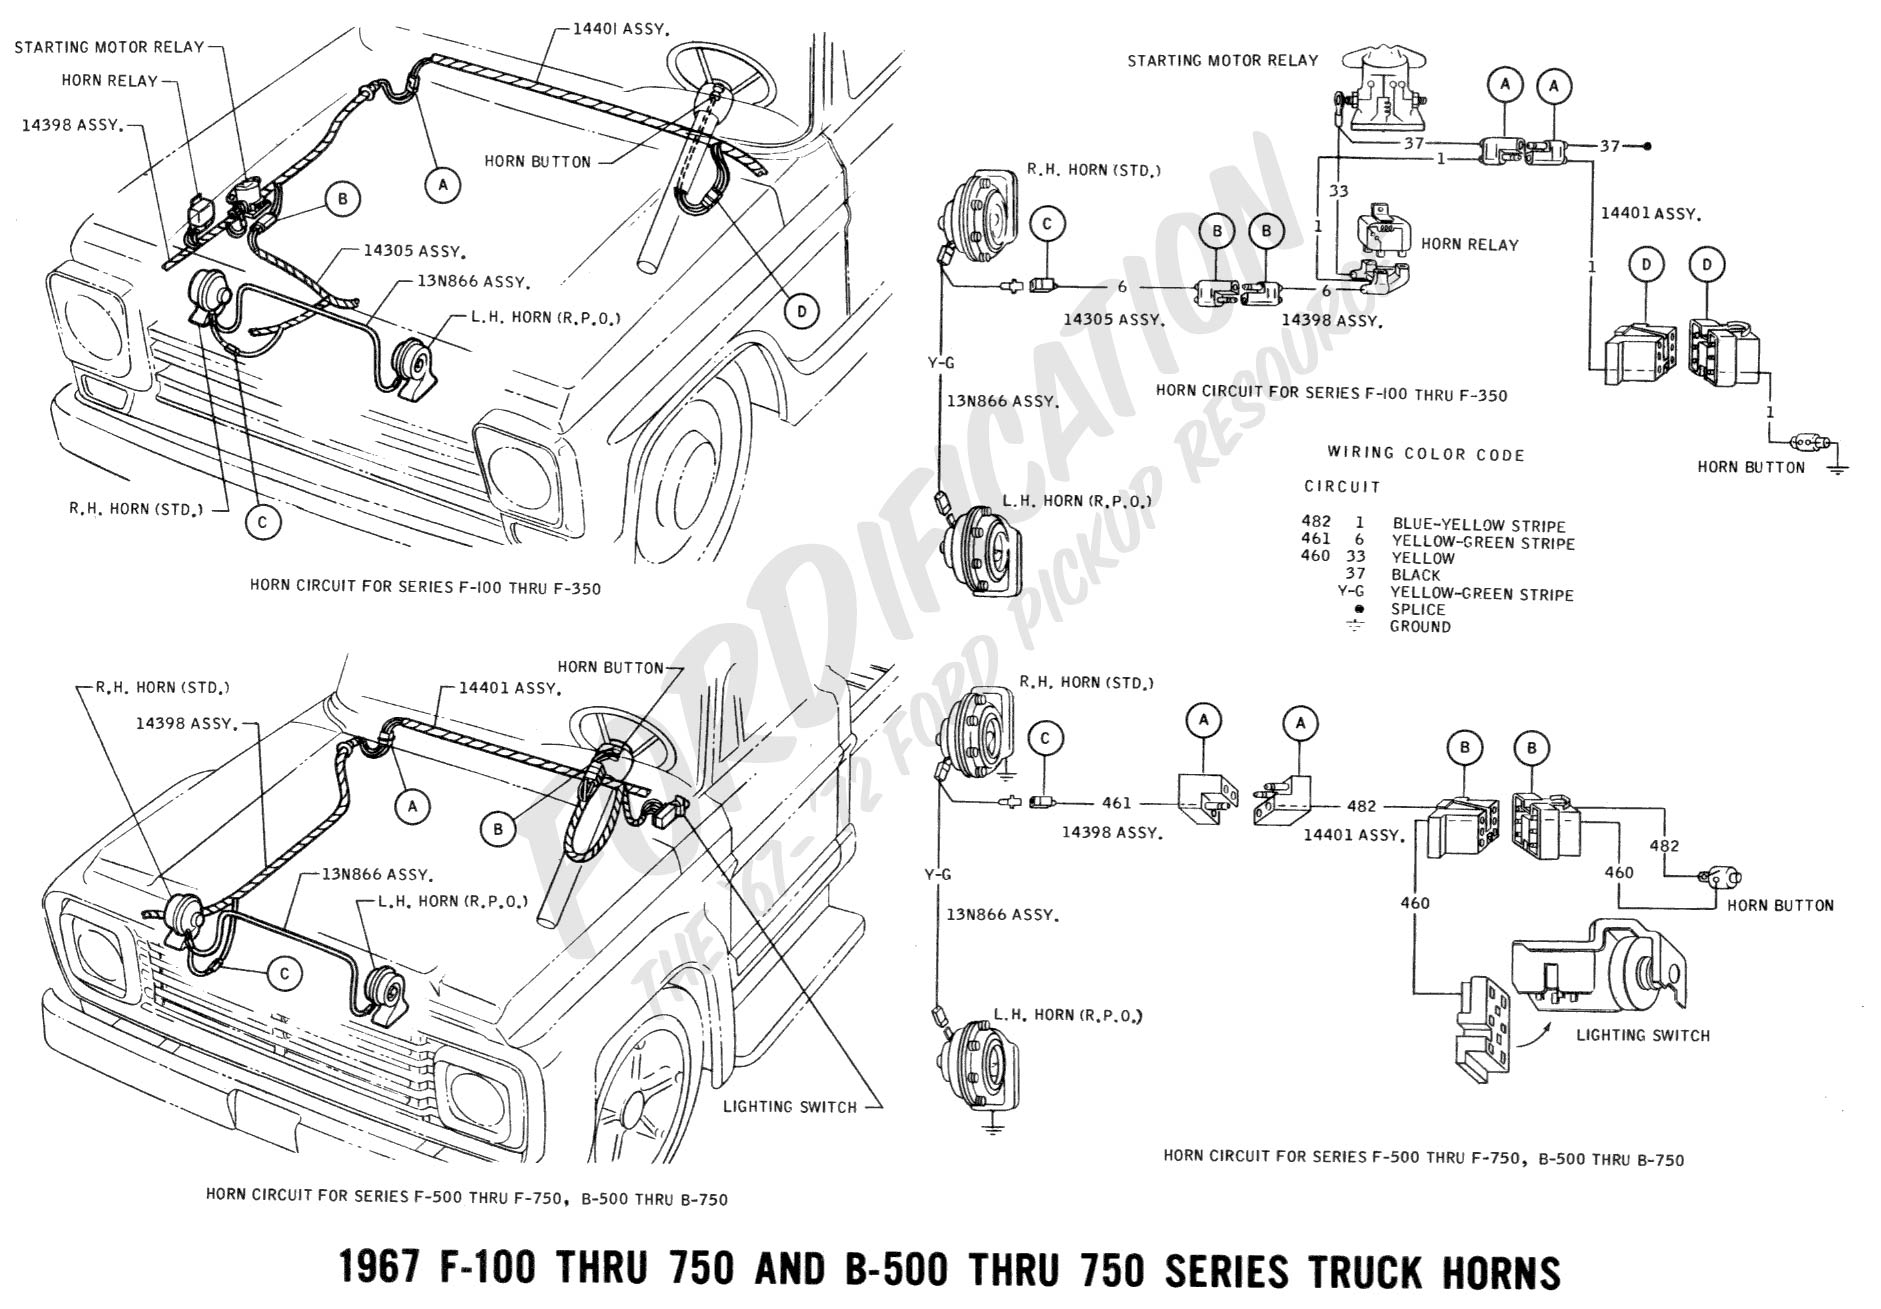 hight resolution of 73 ford f250 wiring wiring diagram mega73 ford f250 wiring wiring diagram repair guides 73 ford